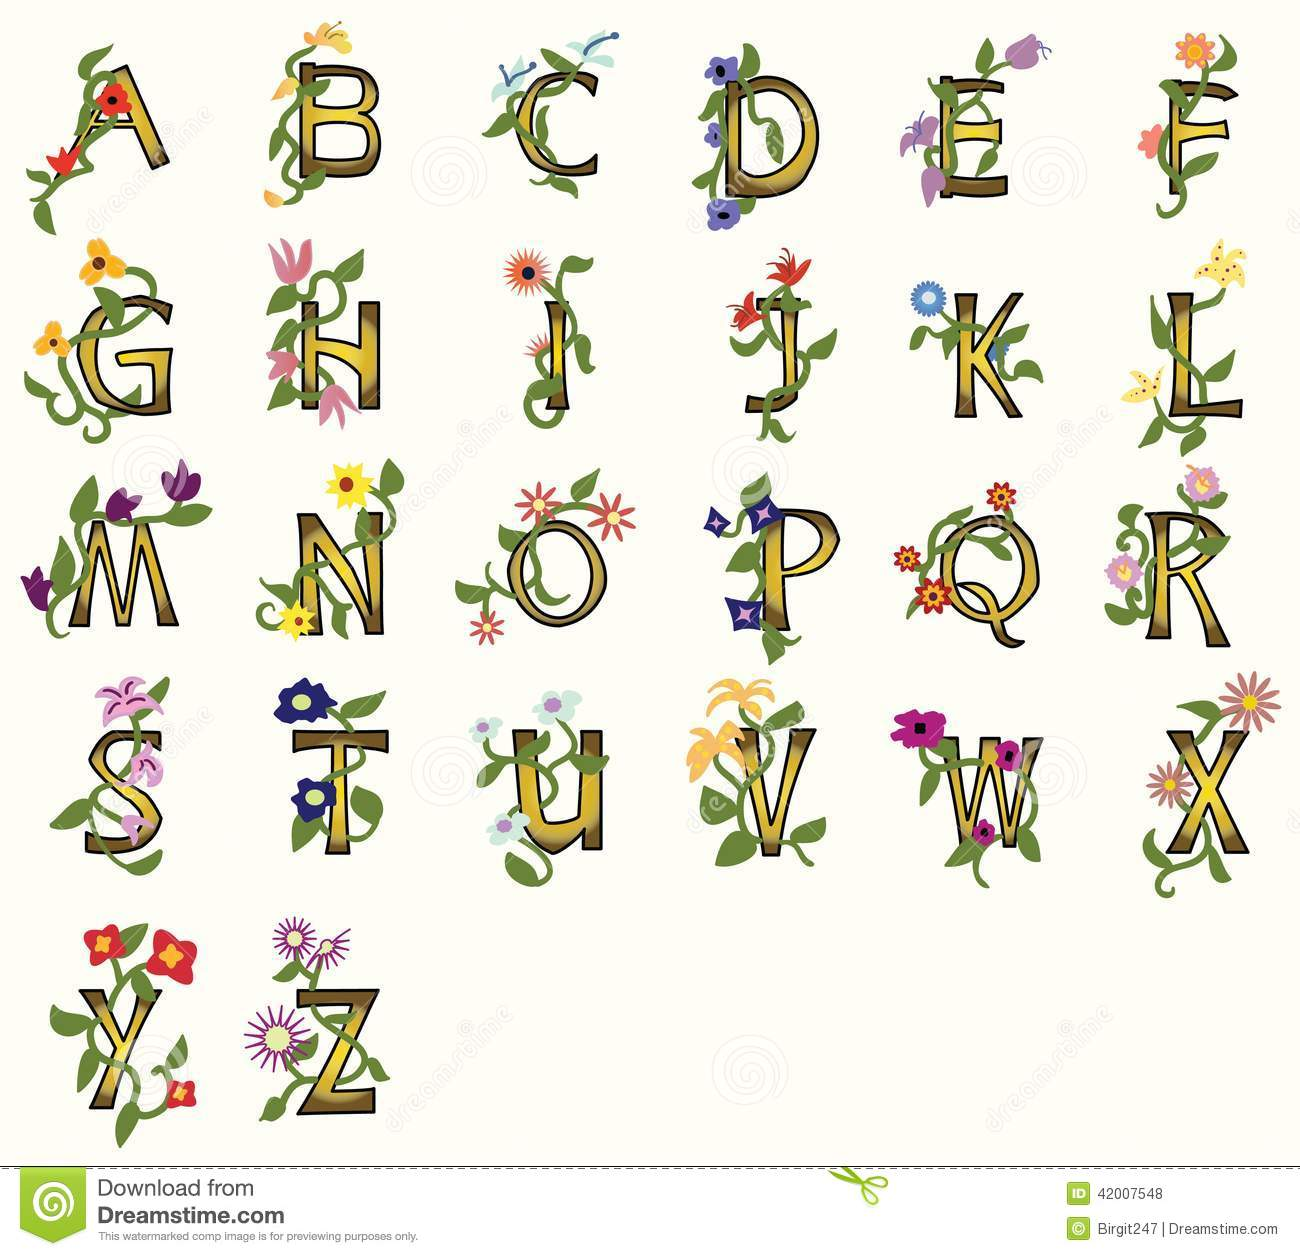 Pretty capital fonts decorated with vines, flowers, leaves.